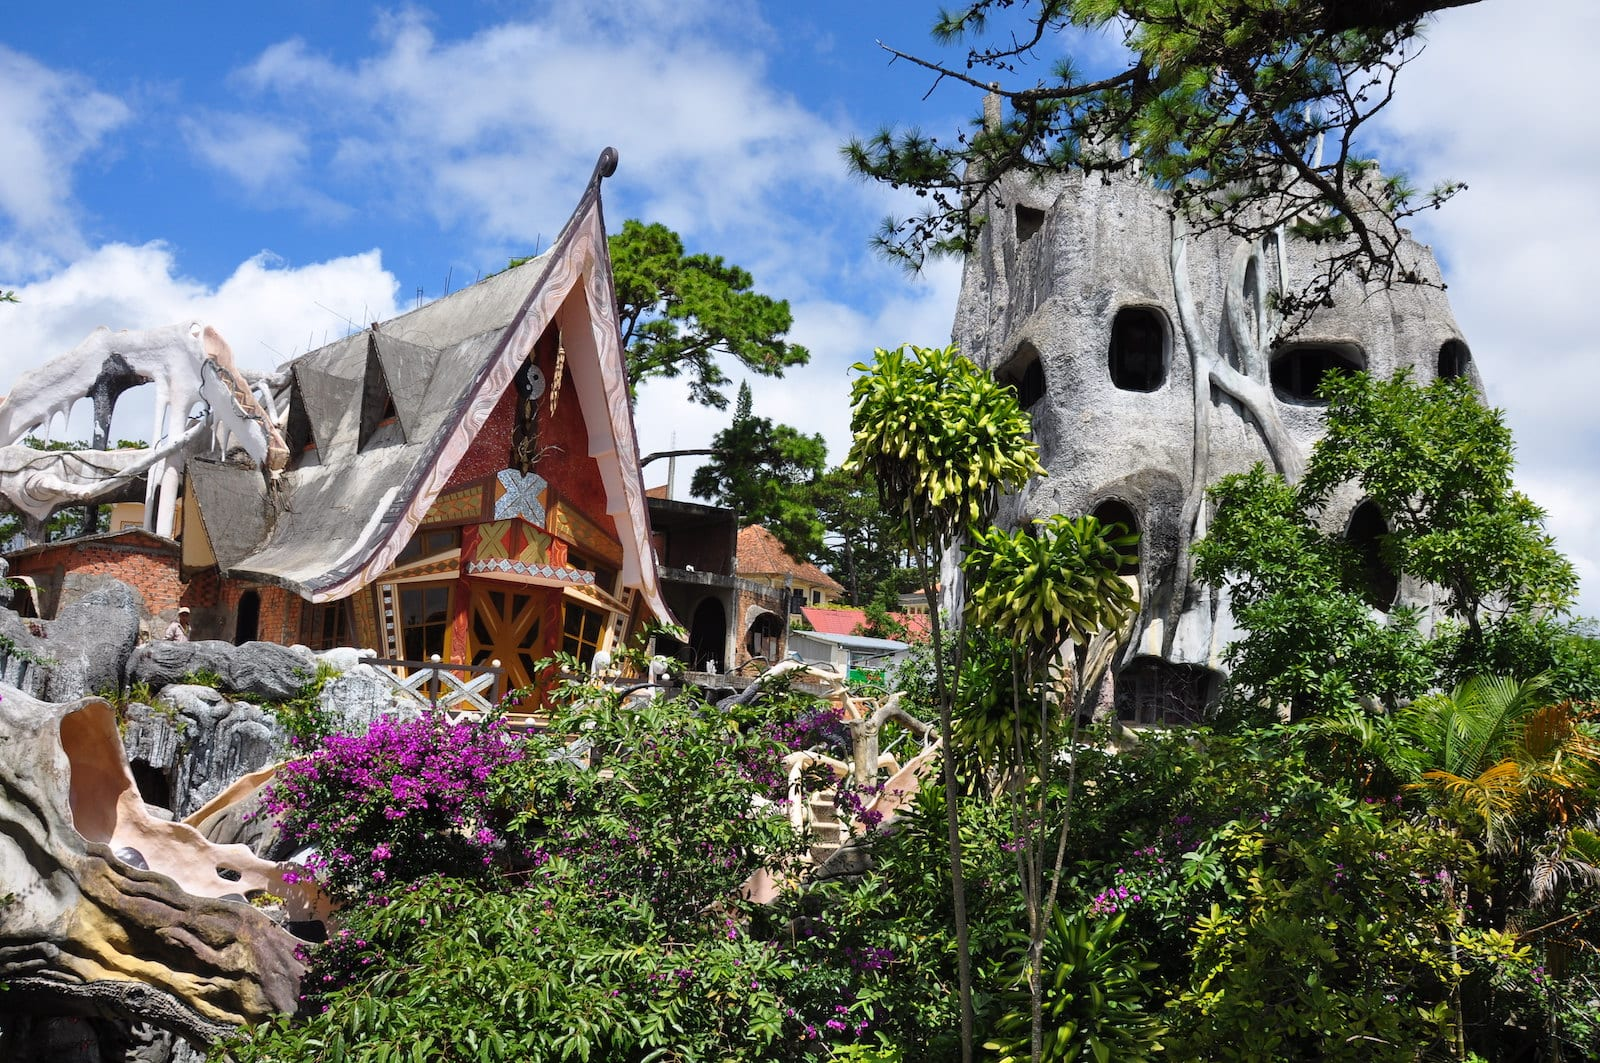 The Crazy House, Dalat